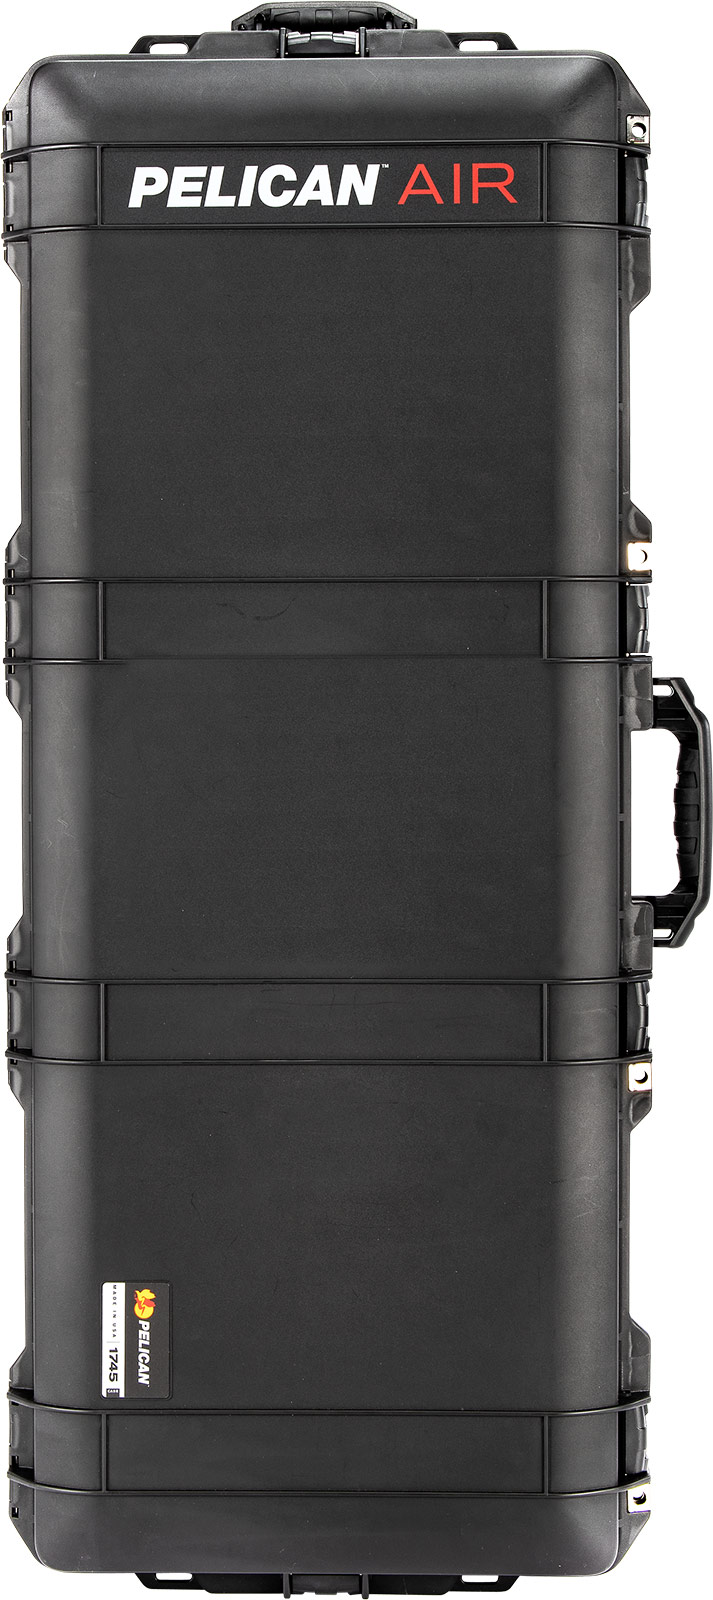 pelican 1745bow 1745 air compound bow case